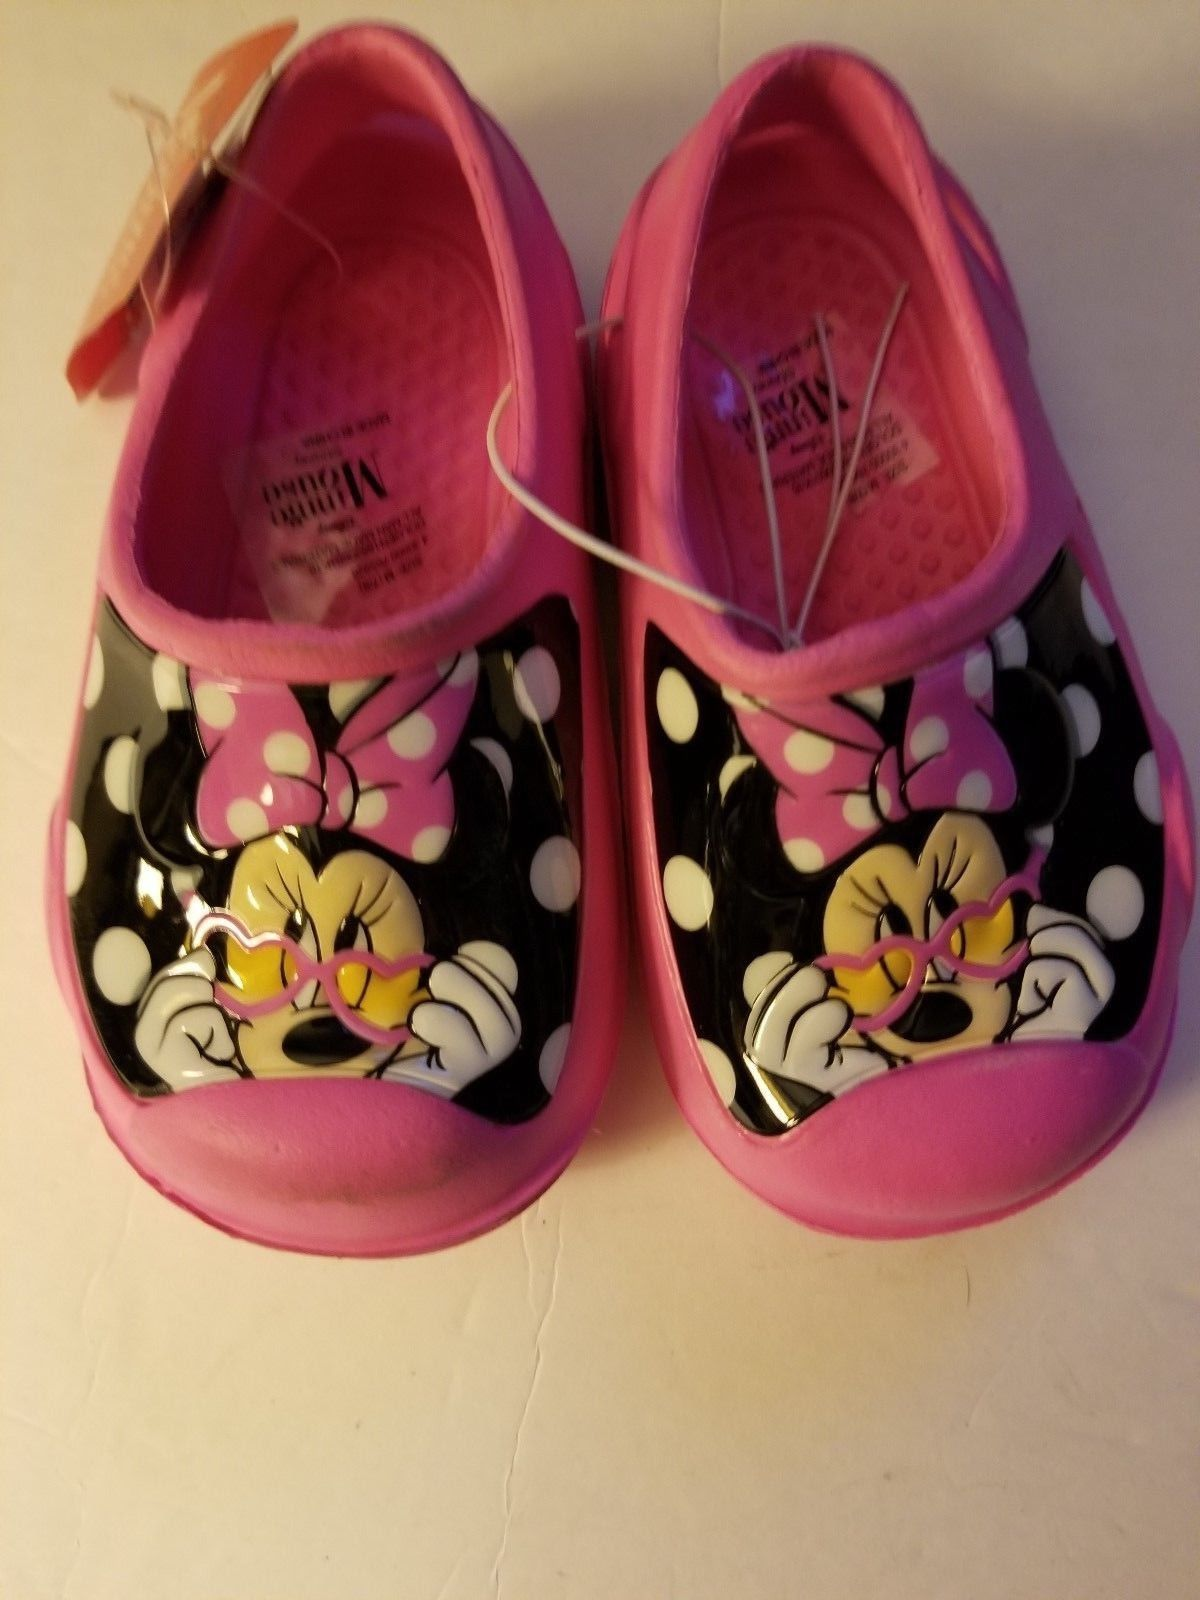 Disney Minnie Mouse Clog - Toddler Girls Size 5/6 7/8 NWT Pink